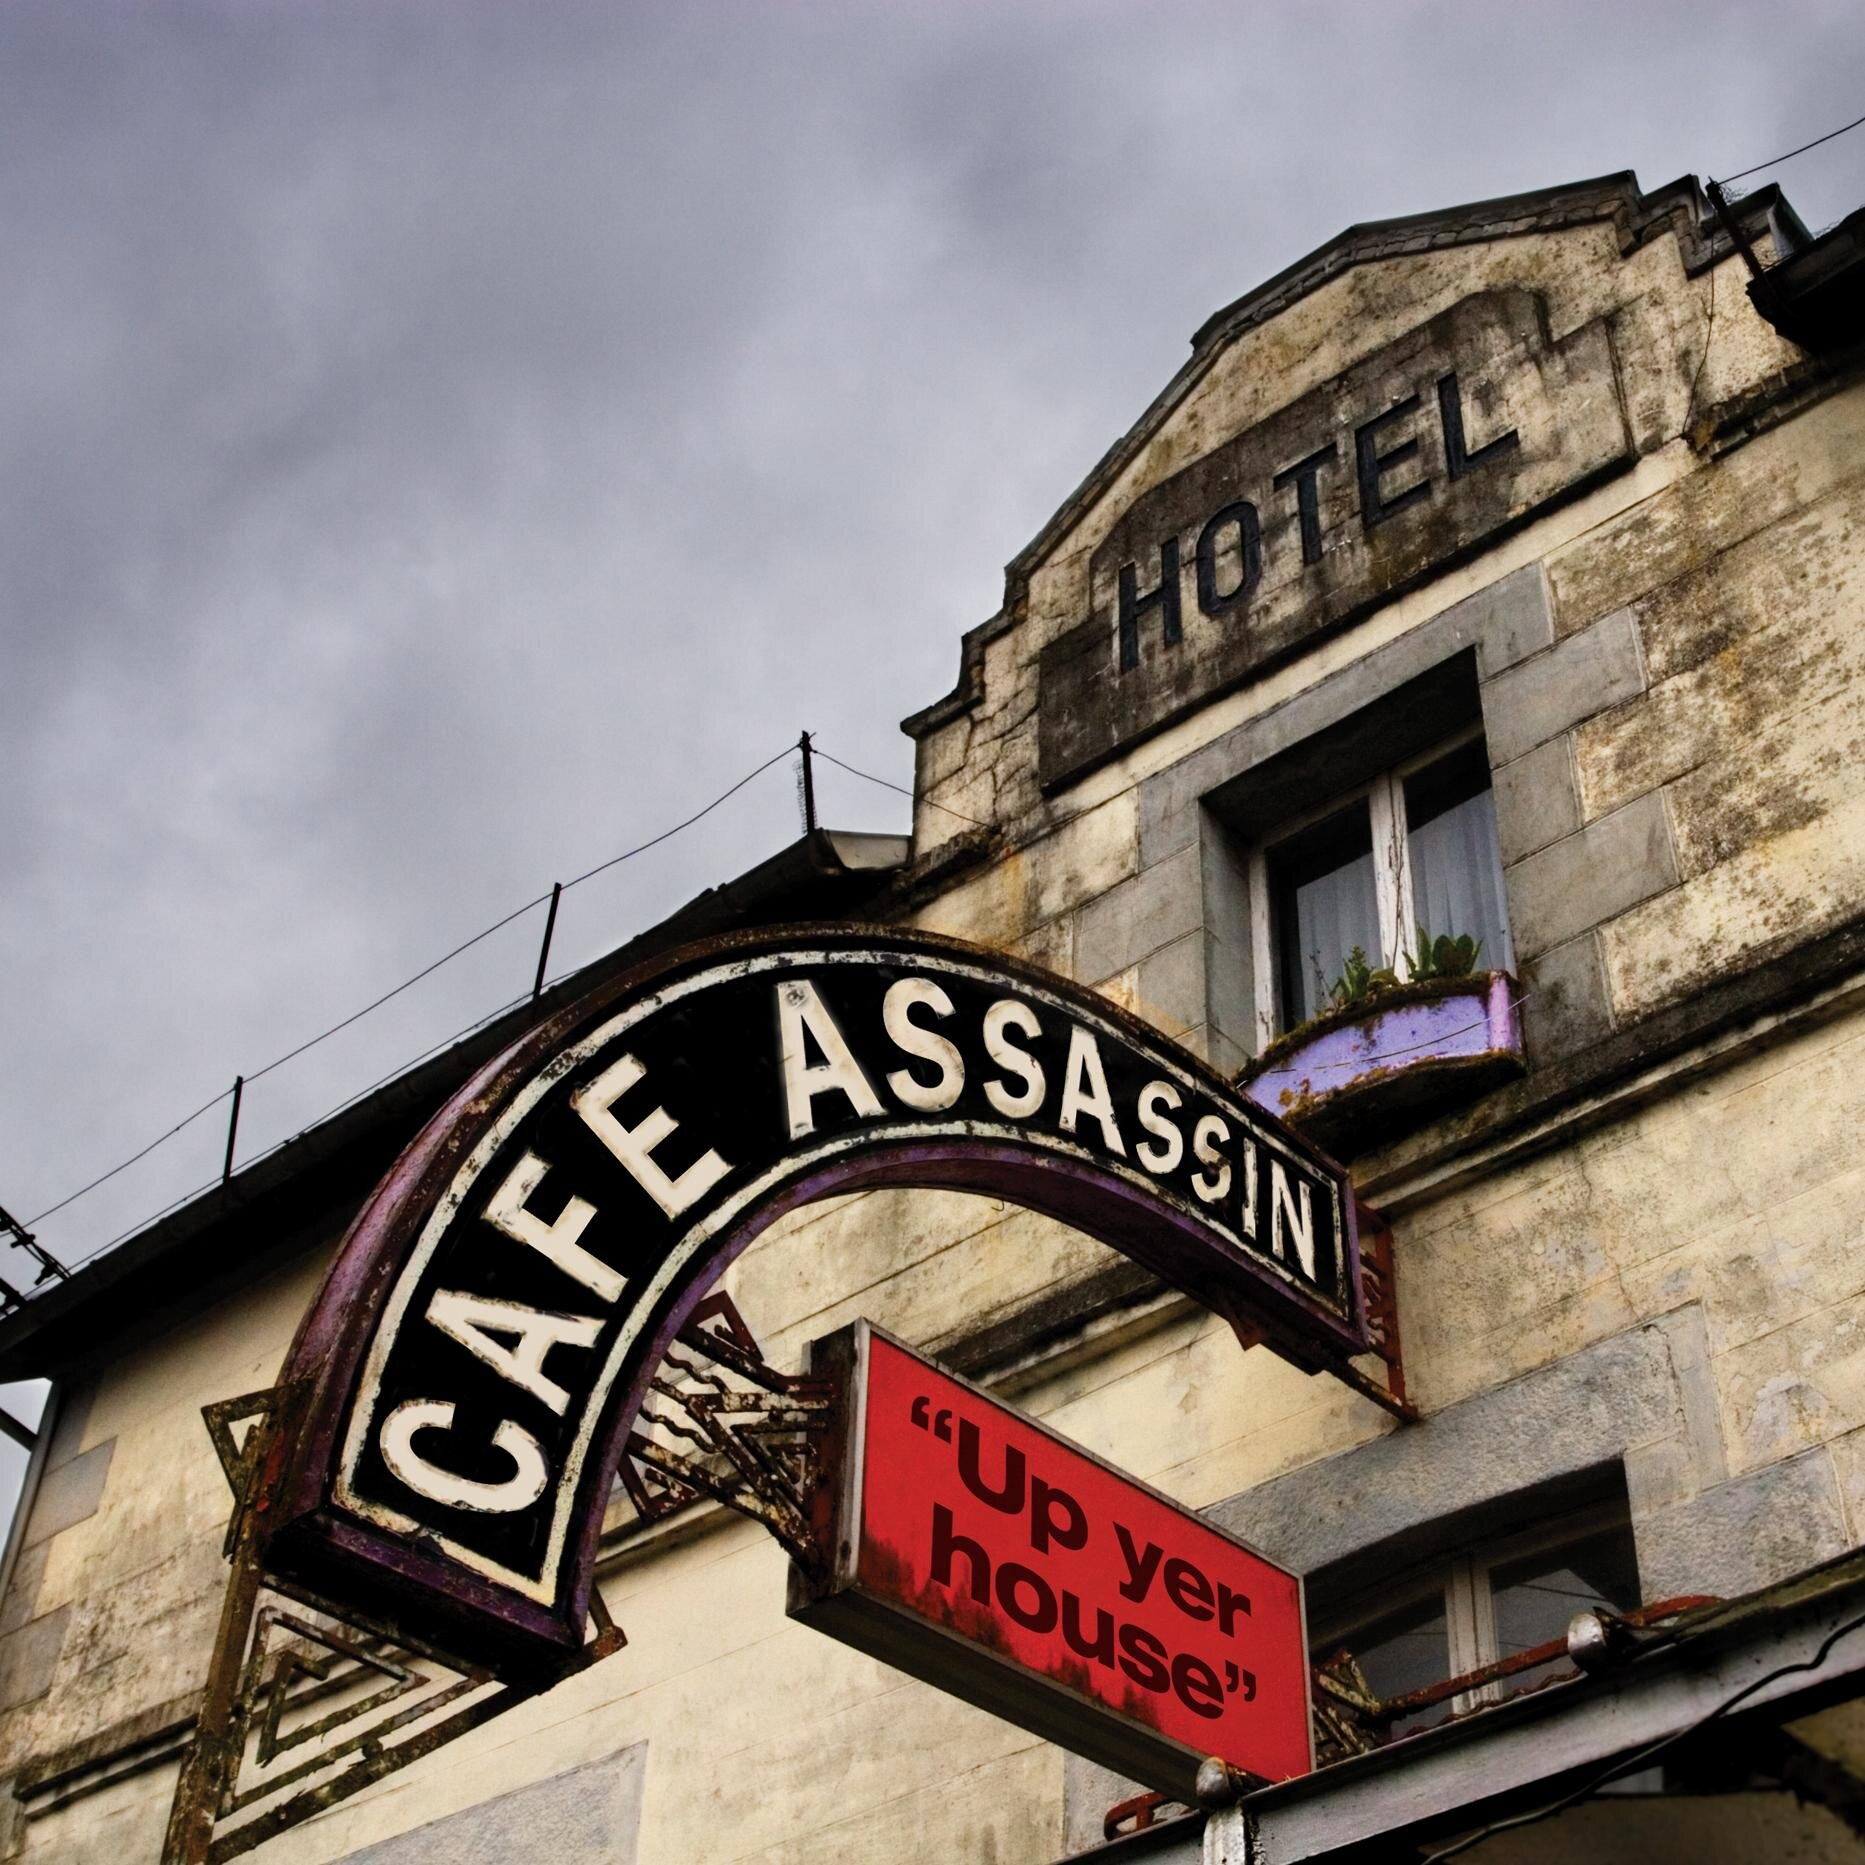 Praise for CAFE ASSASSIN